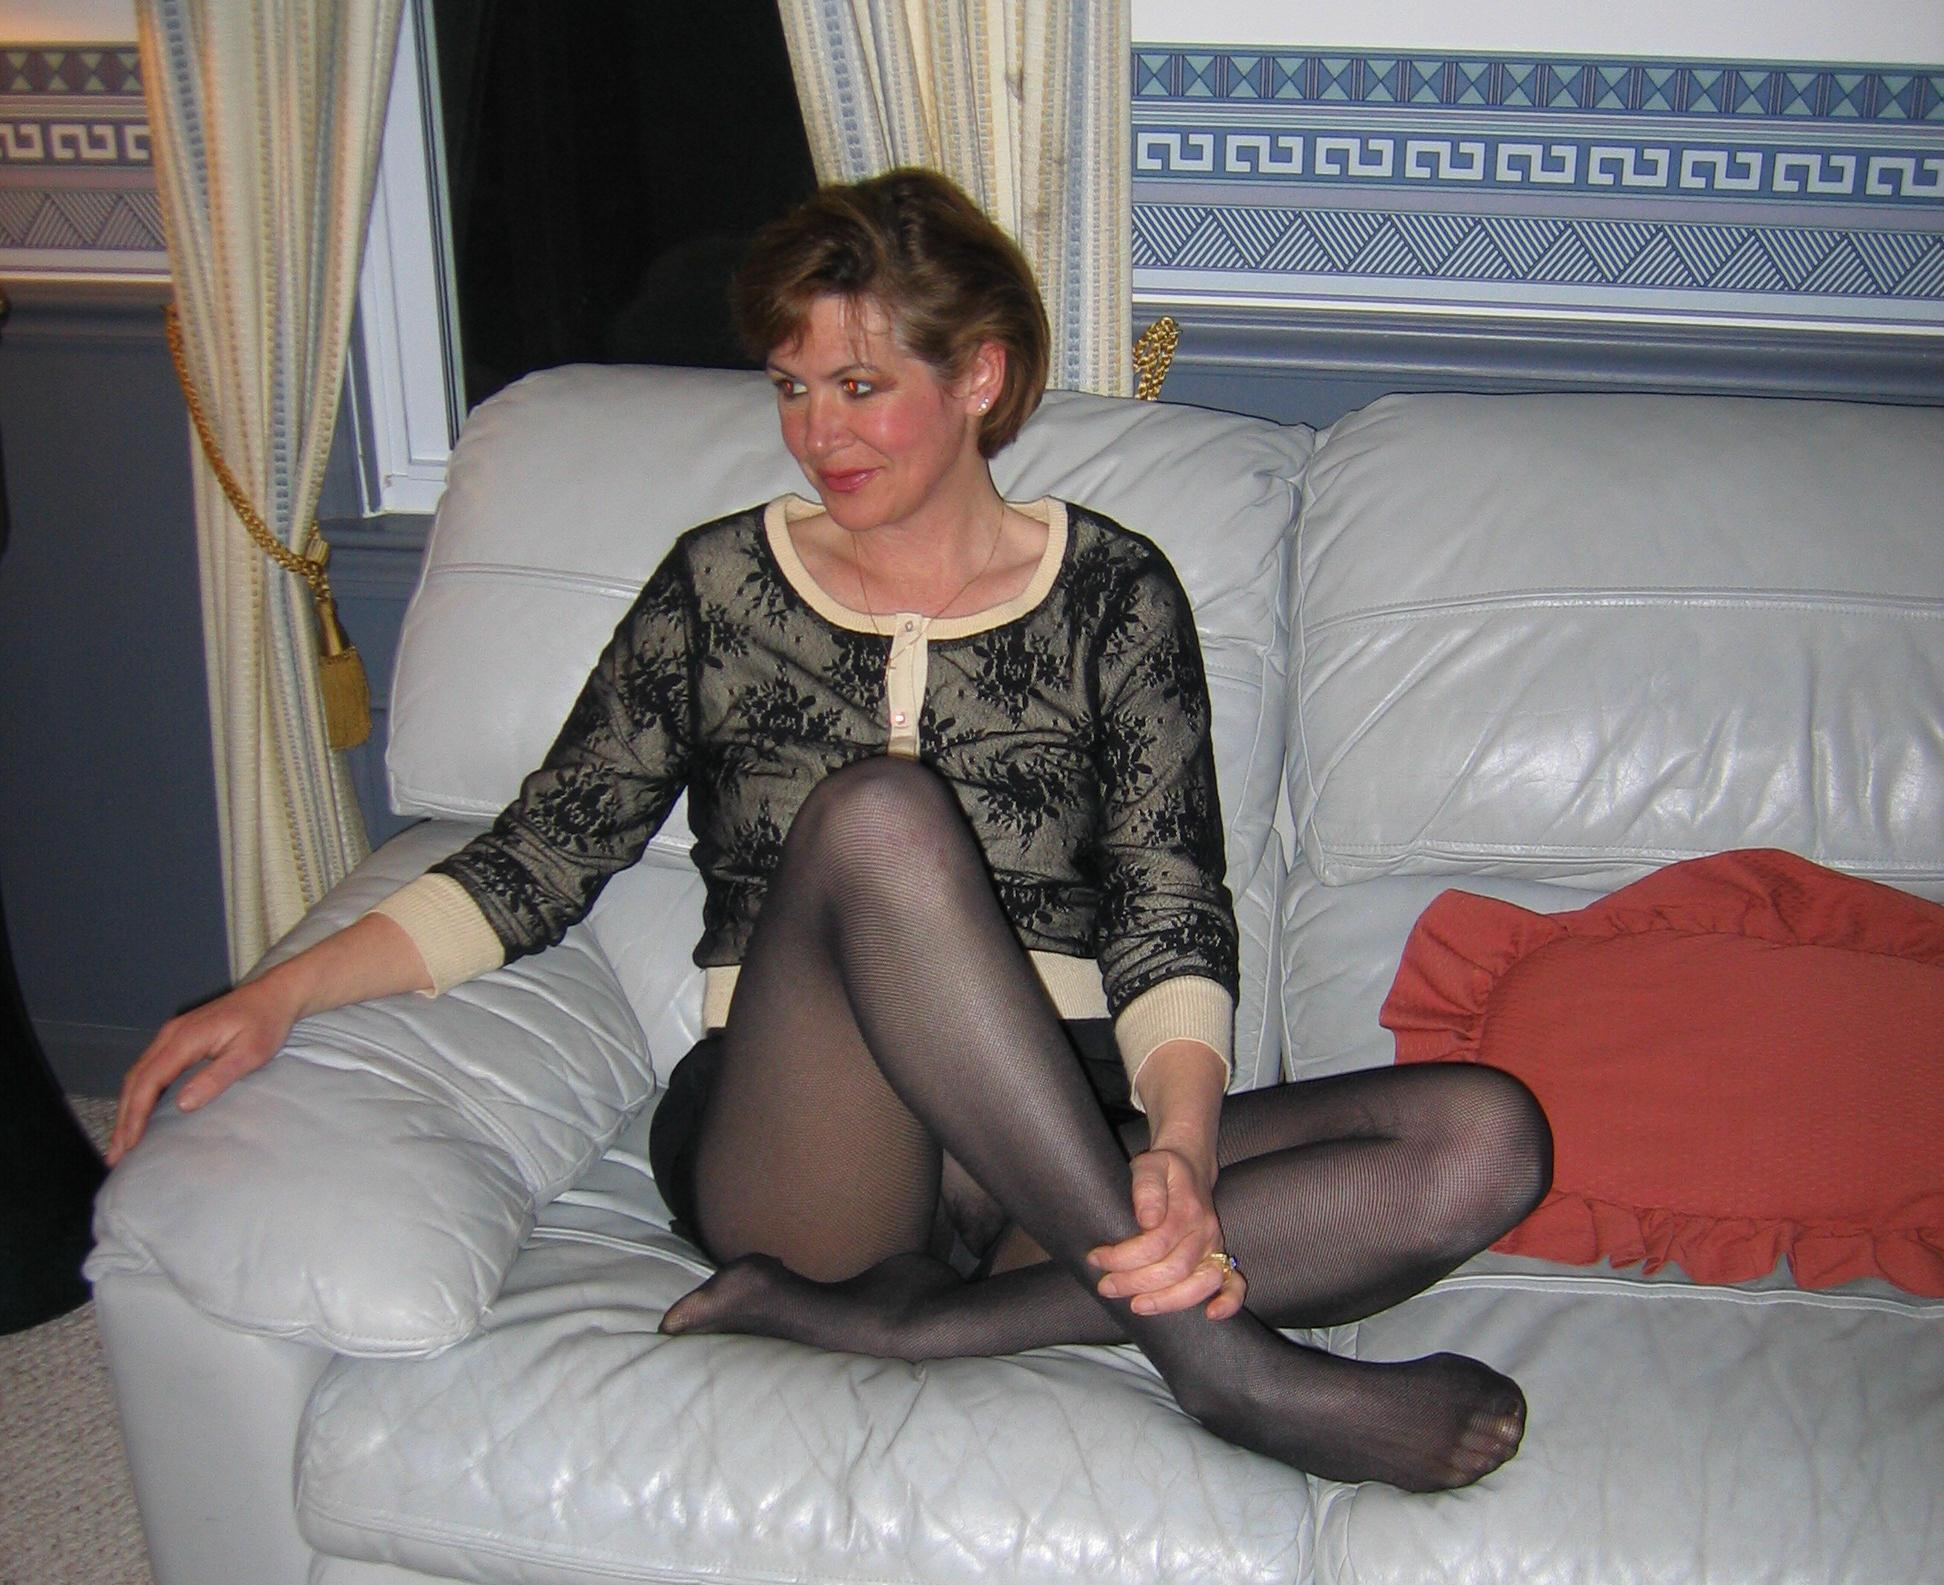 Best Mature Pantyhose Sites Mature 45